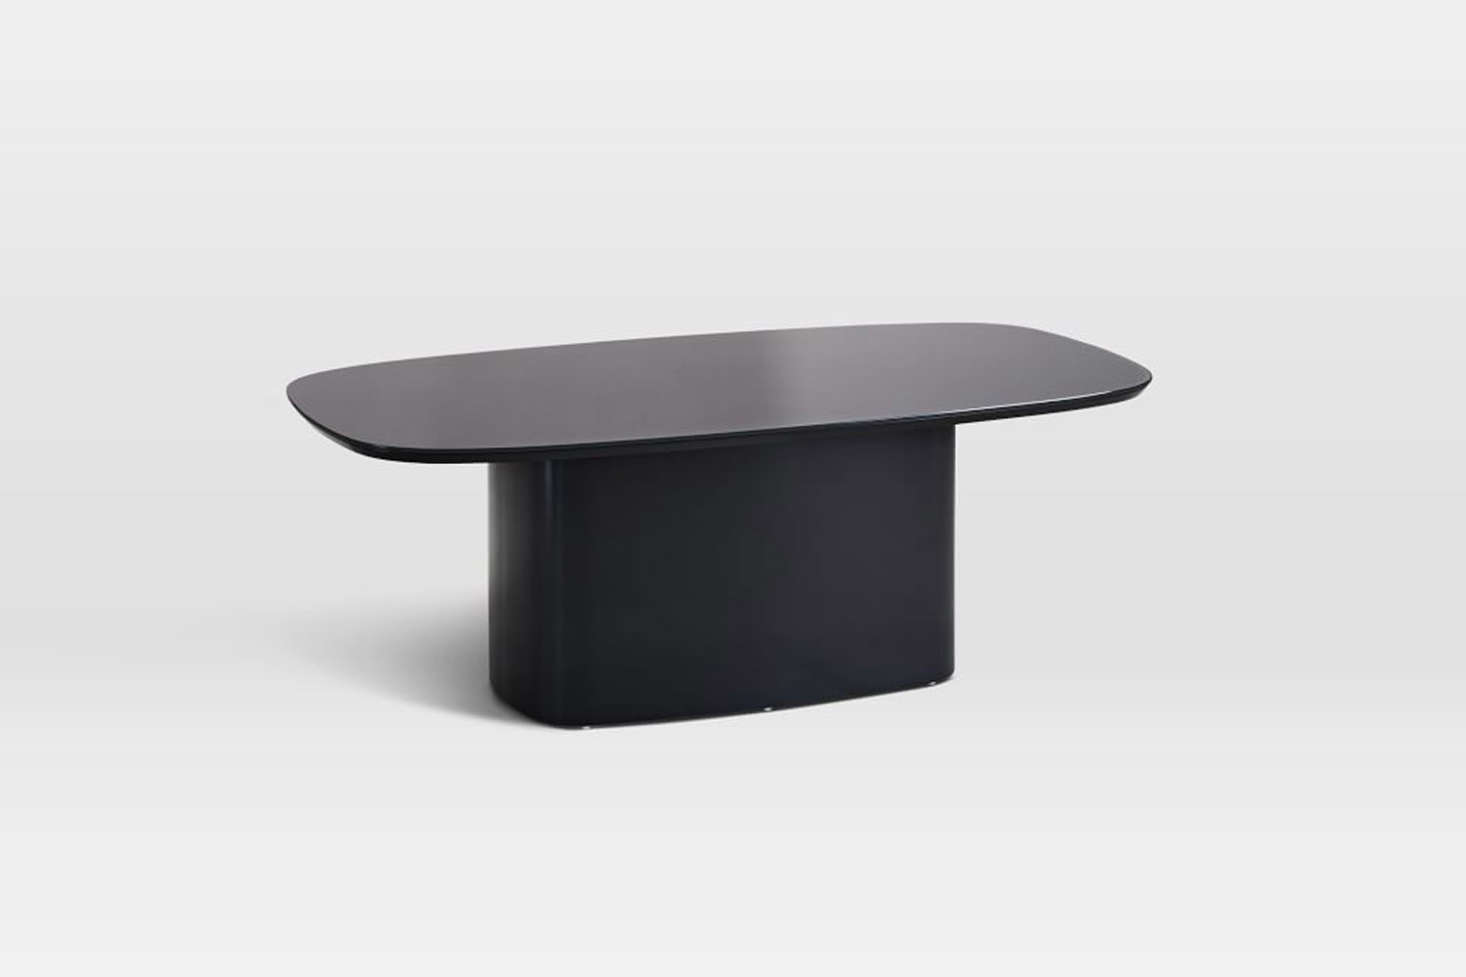 The Superellipse Glass Top Coffee Table in Anthracite is $9.99 at West Elm.